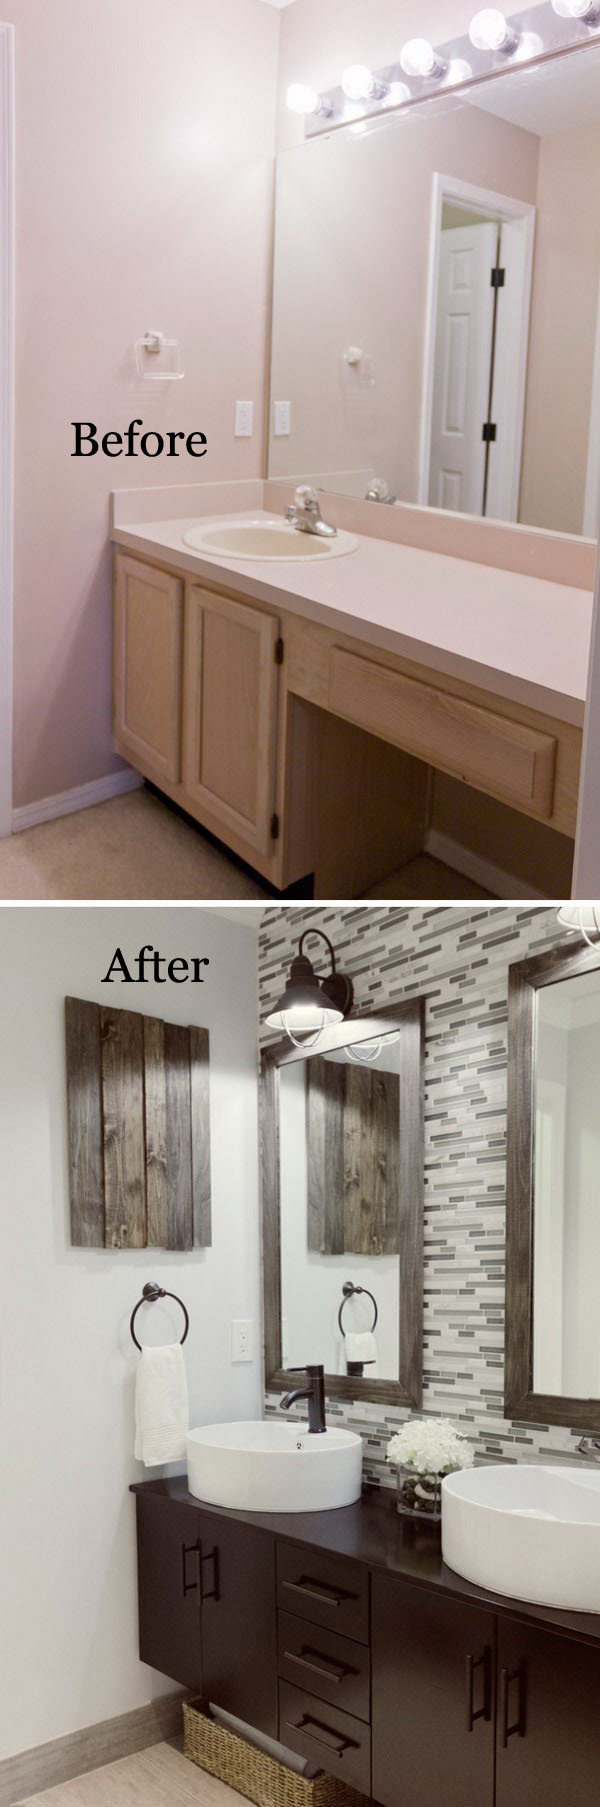 Before and after 20 awesome bathroom makeovers hative for Bathroom remodel photos